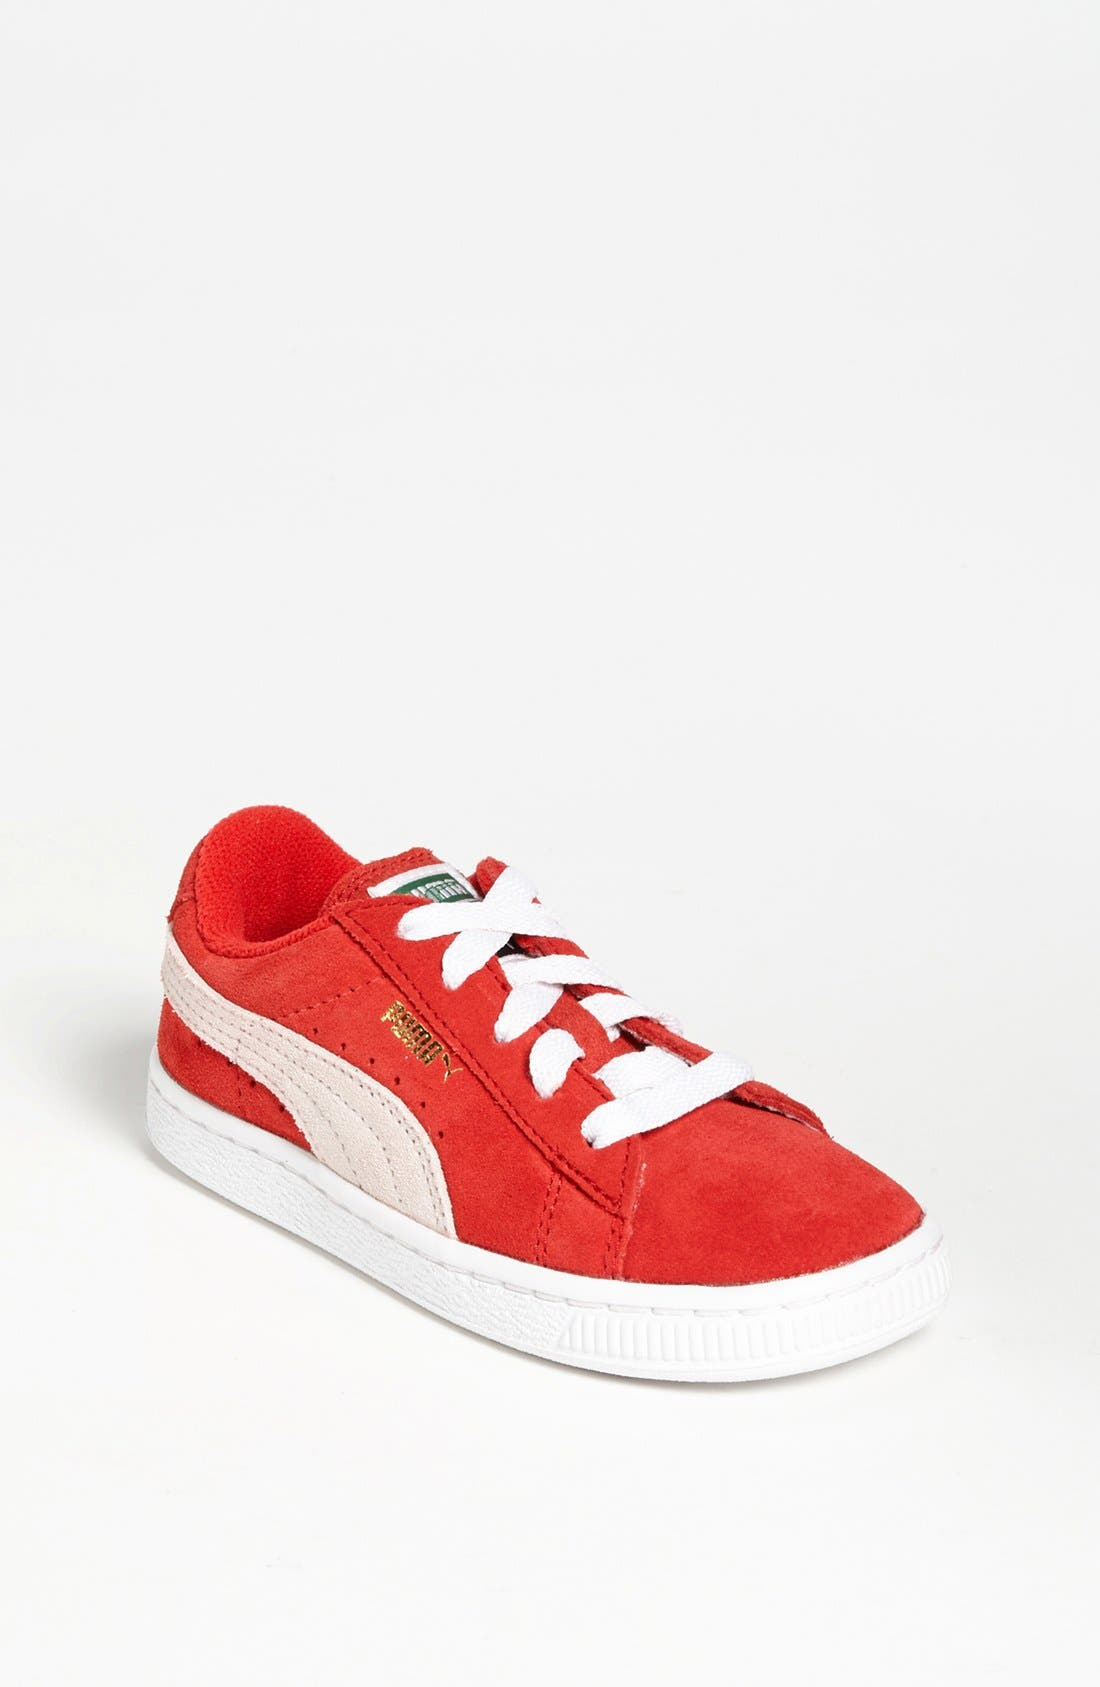 Main Image - PUMA Suede Sneaker (Baby, Walker, Toddler, Little Kid & Big Kid)